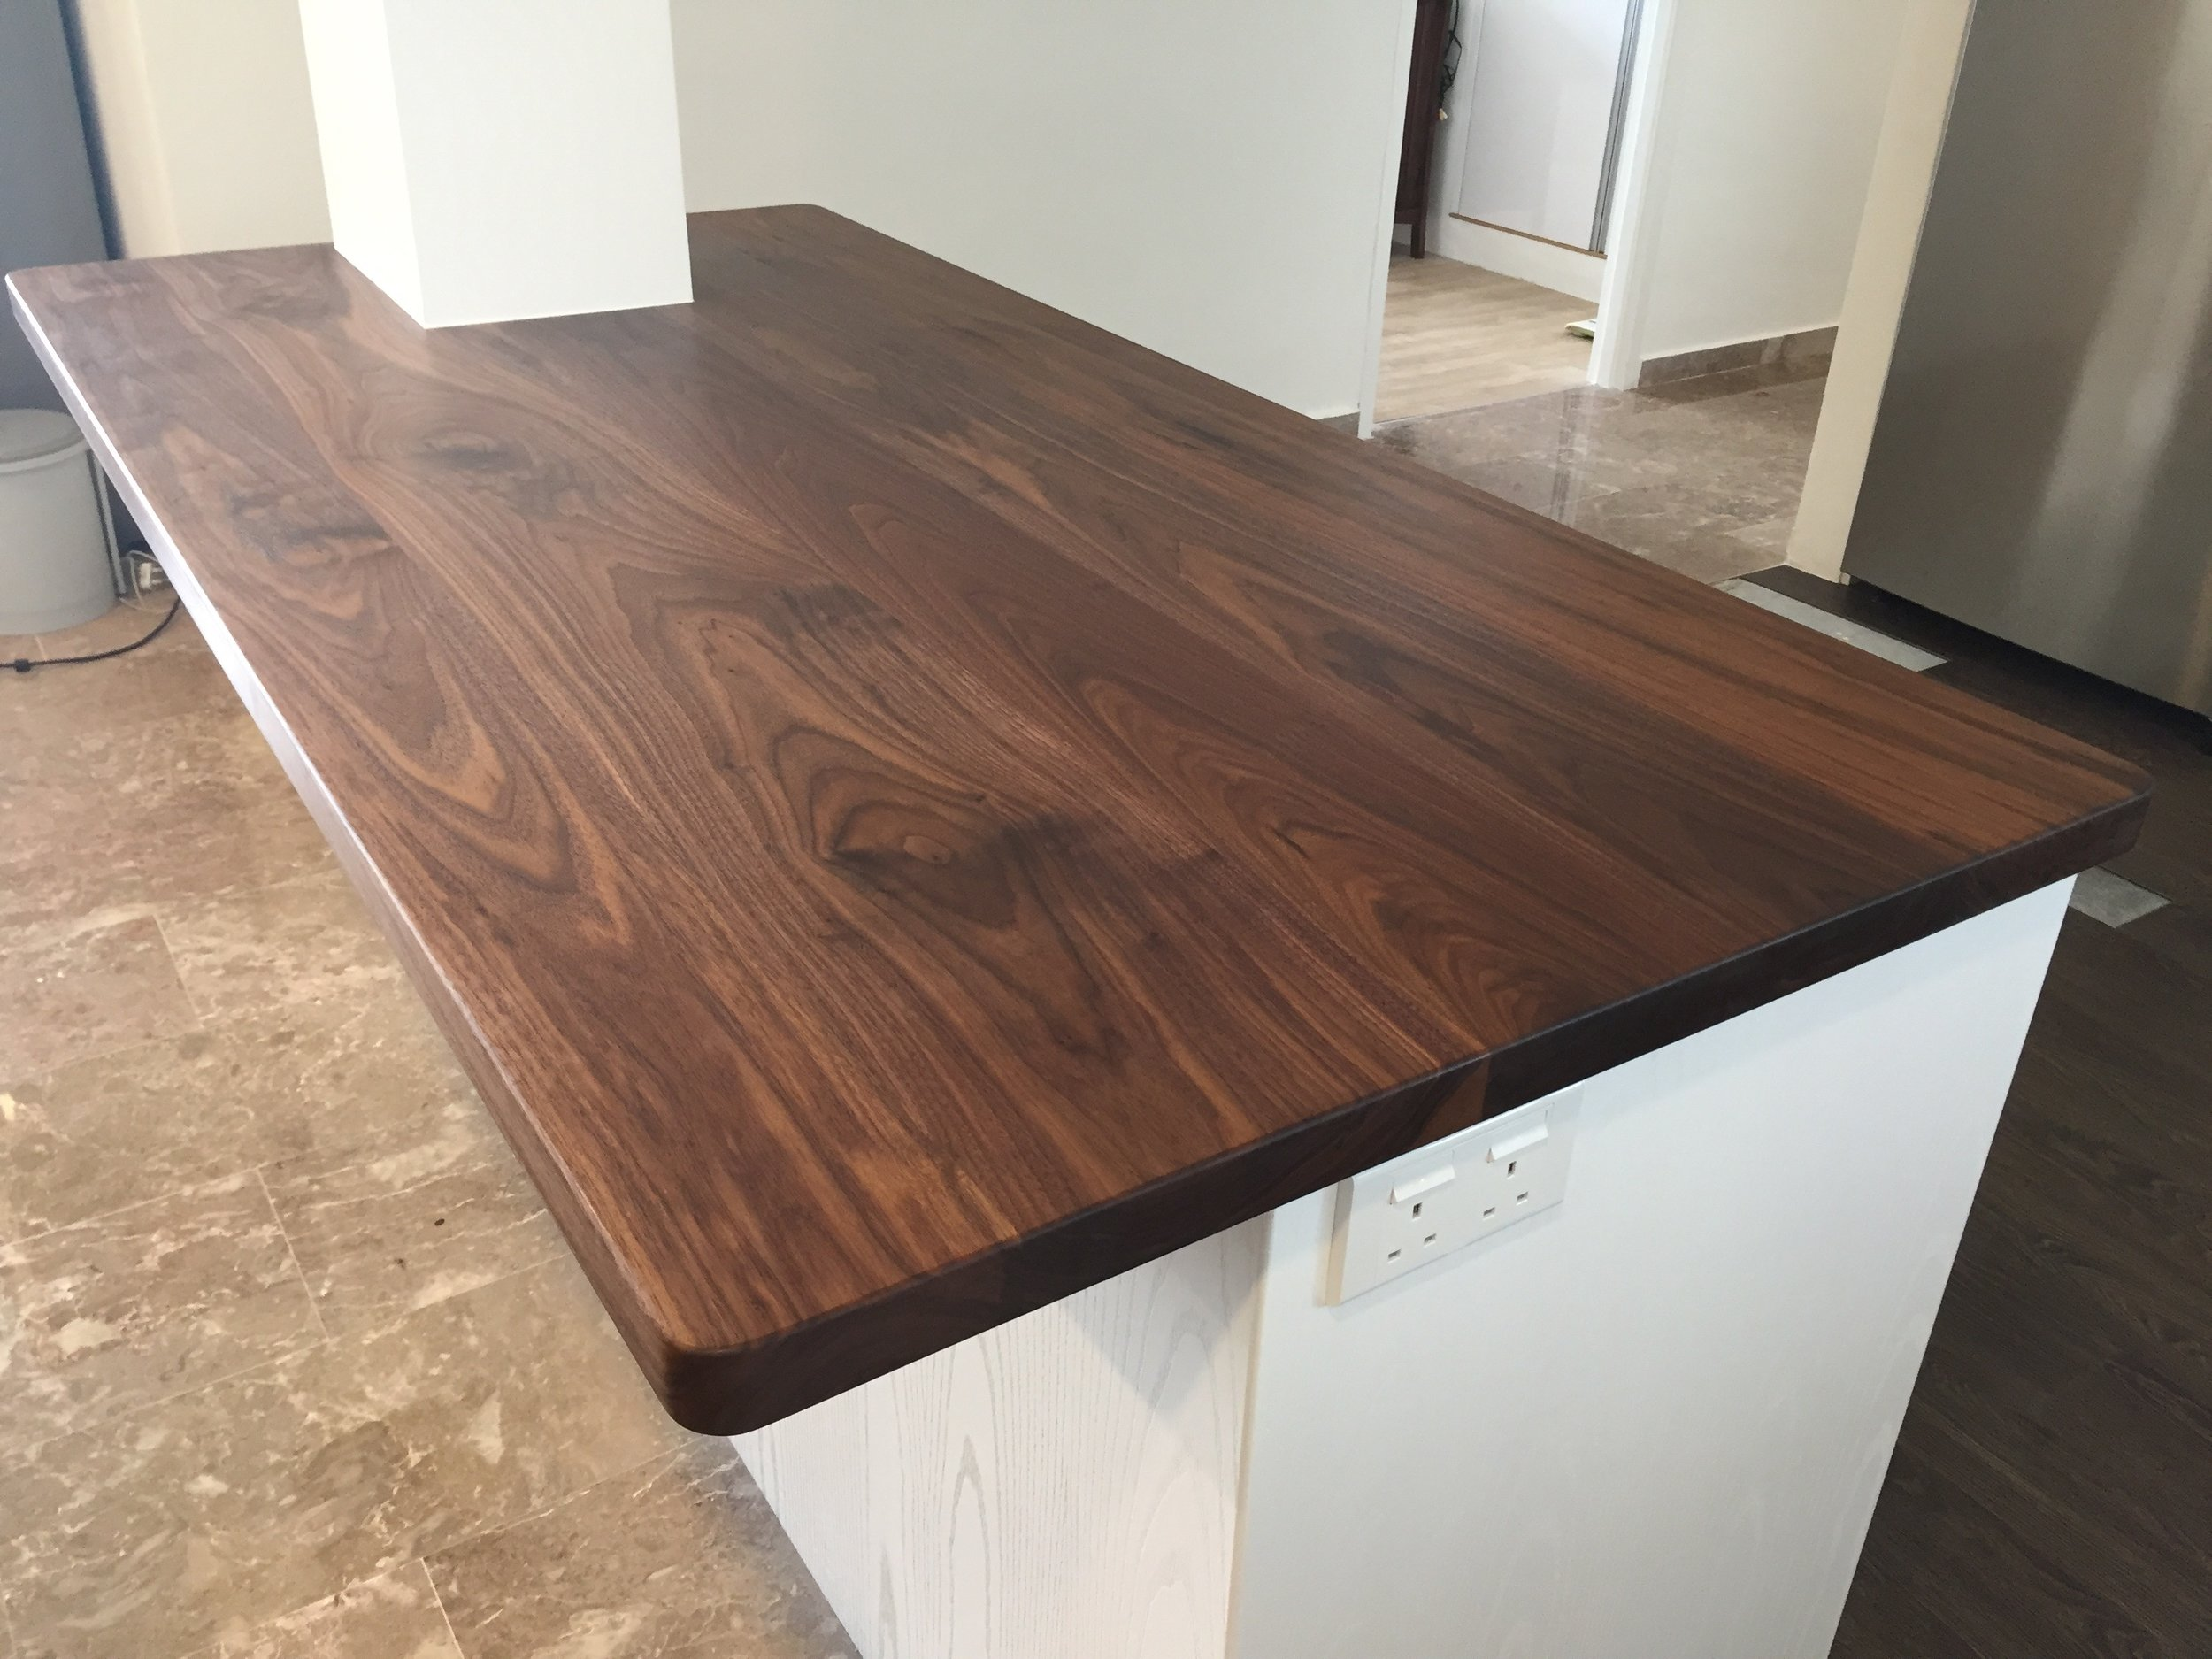 Solid Wood top in natural oil finish can be a great show piece, especially when used as an island top